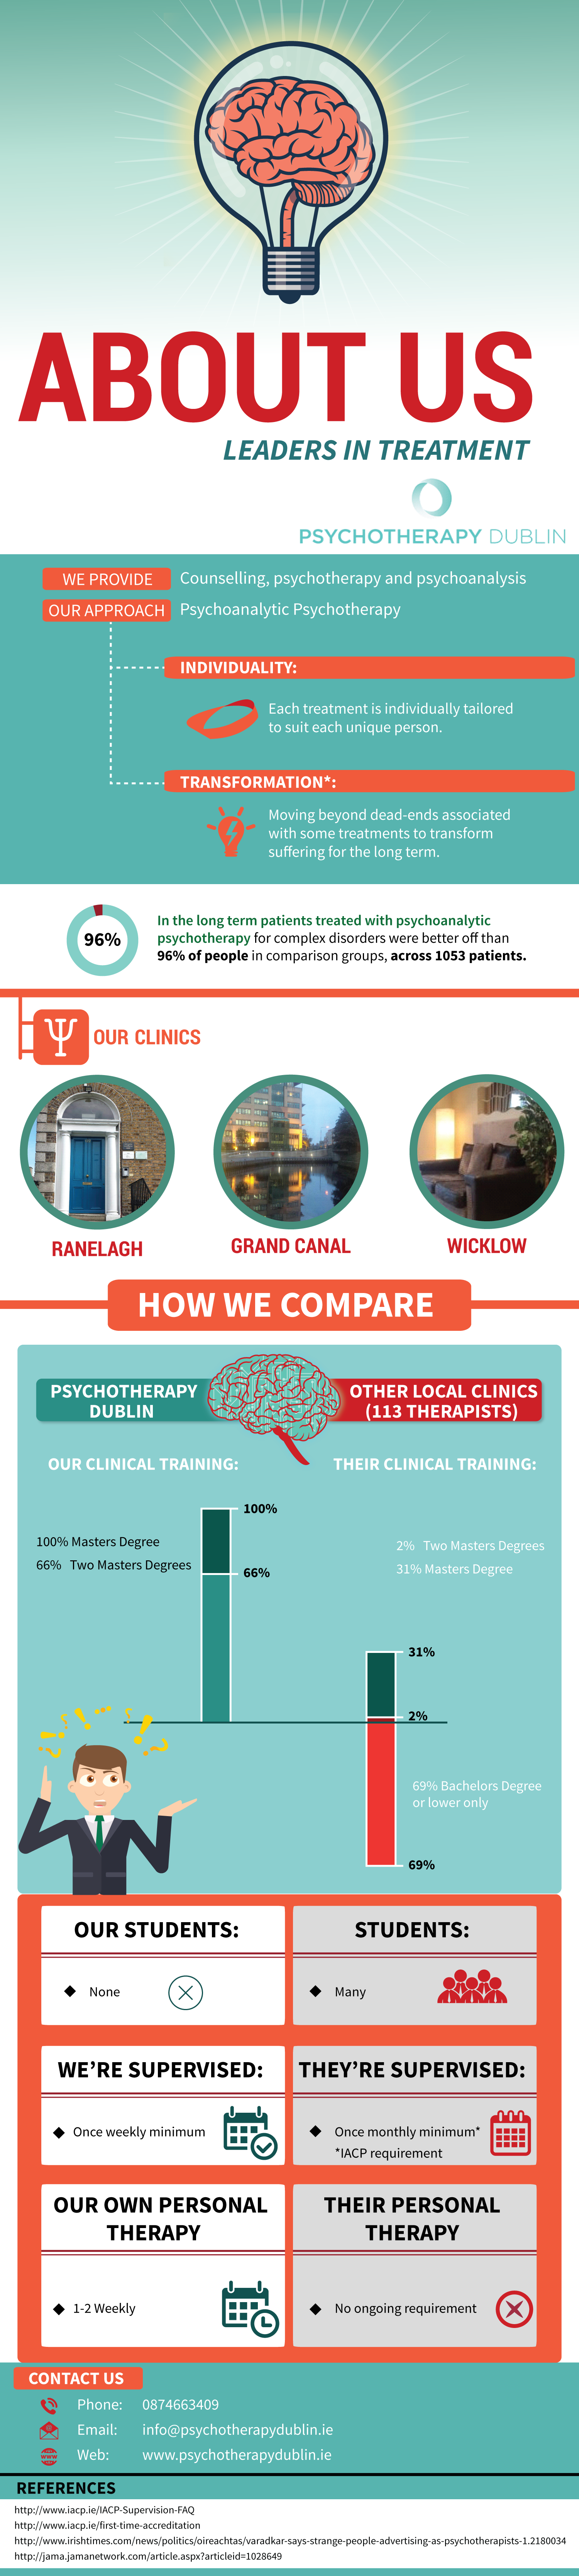 counselling dublin about us infographic